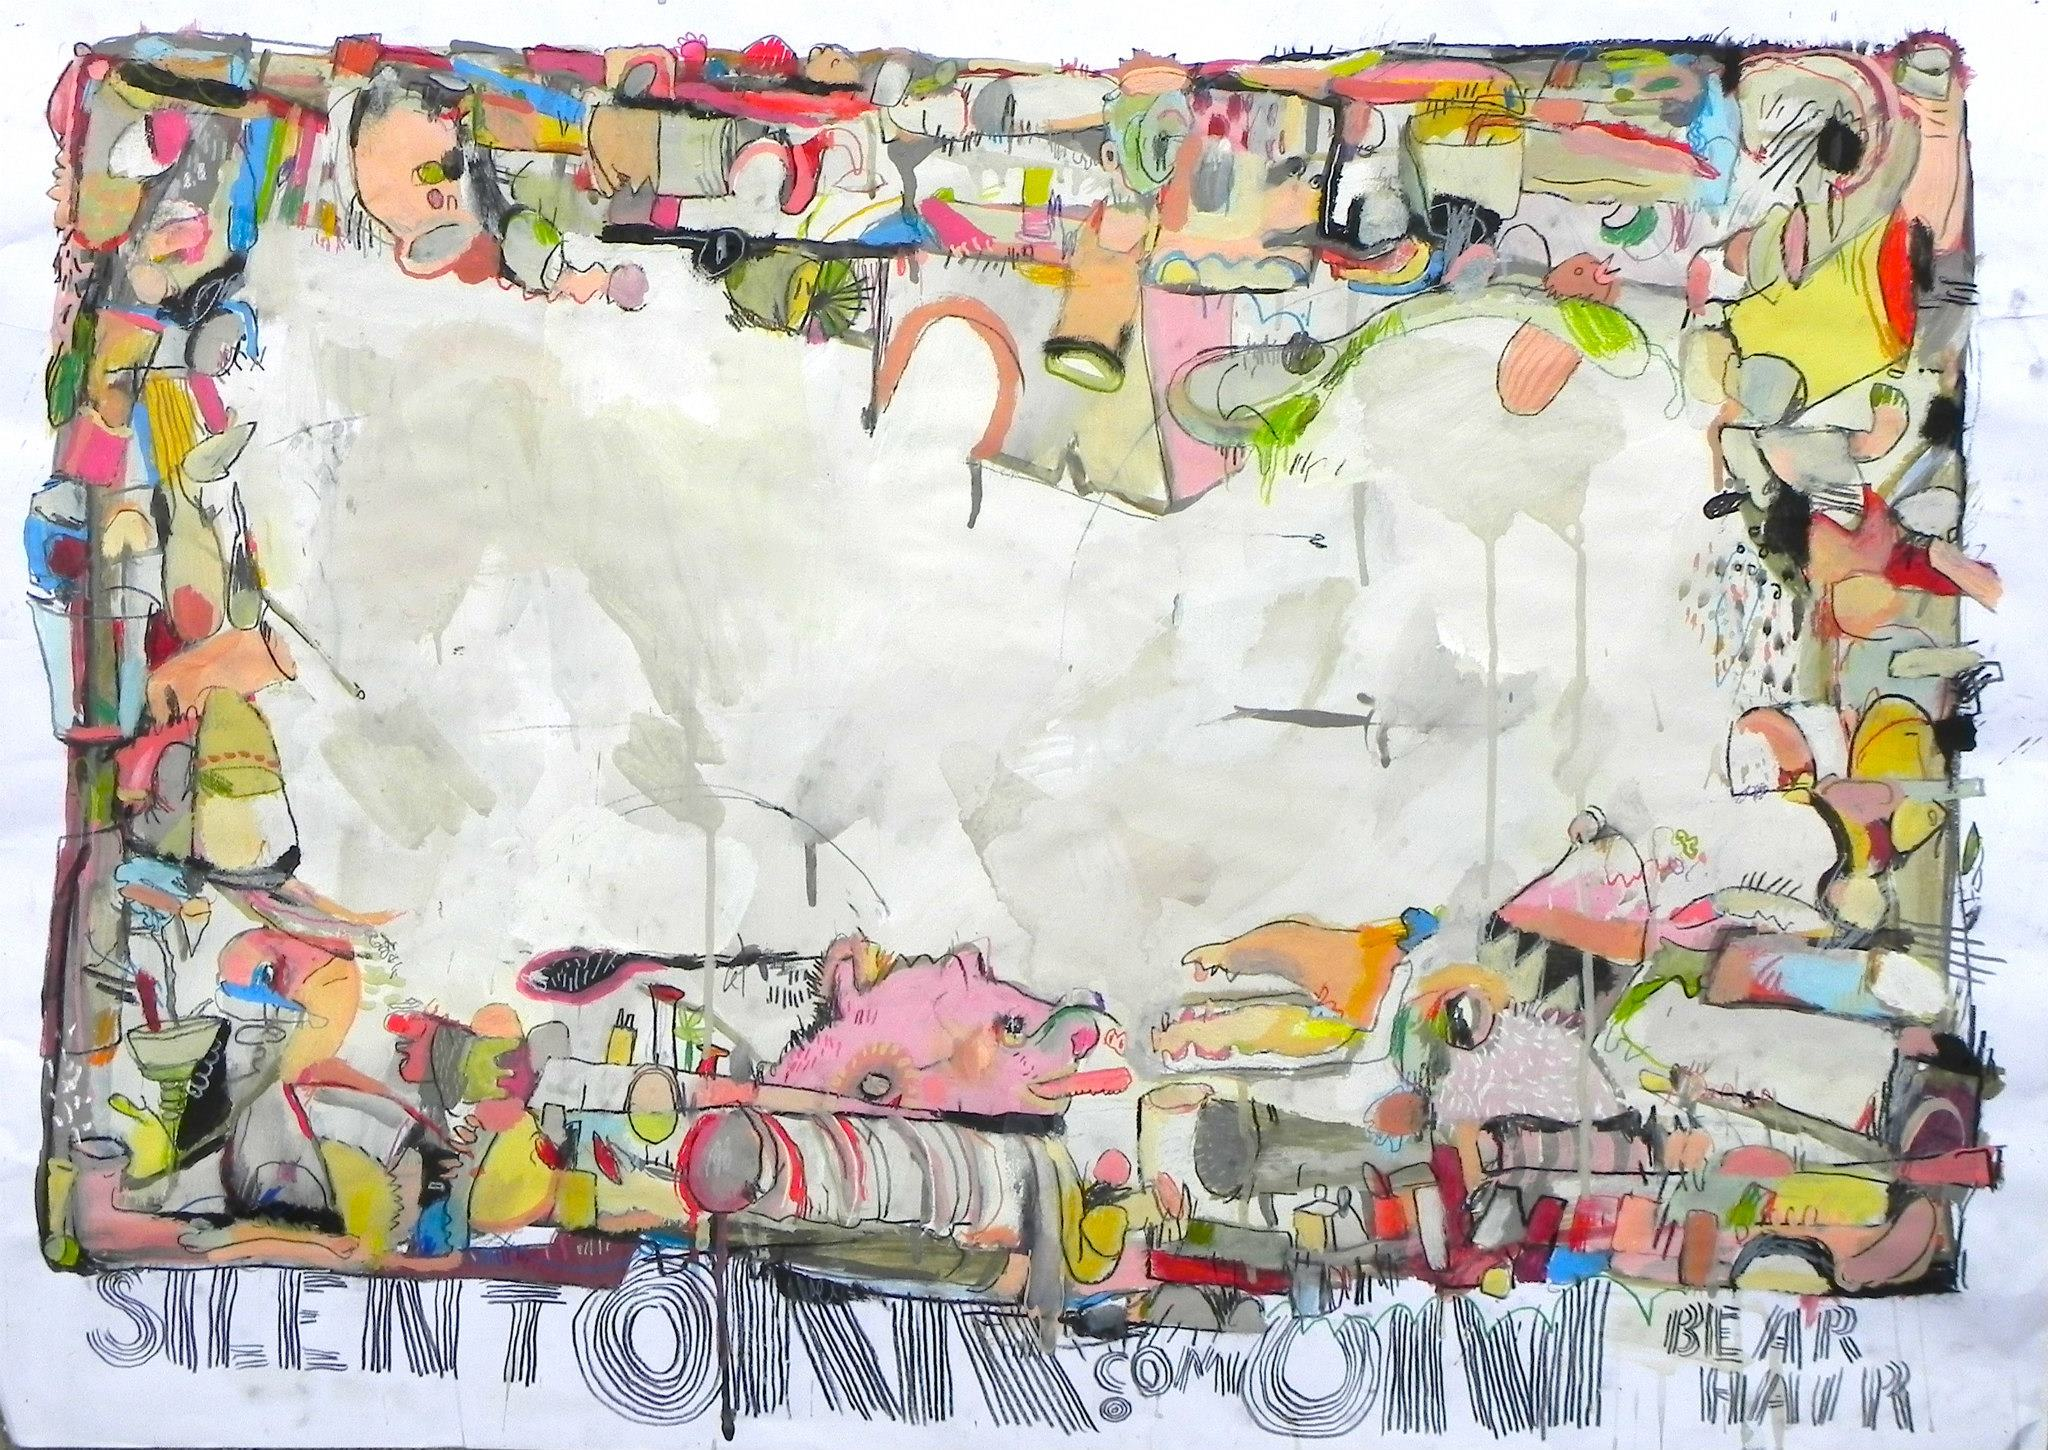 Kristian Glynn | Silent Om.Com On Bear Hair | 2013 | Acrylic on Paper | 23 1⁄2 x 33 in. (unframed)